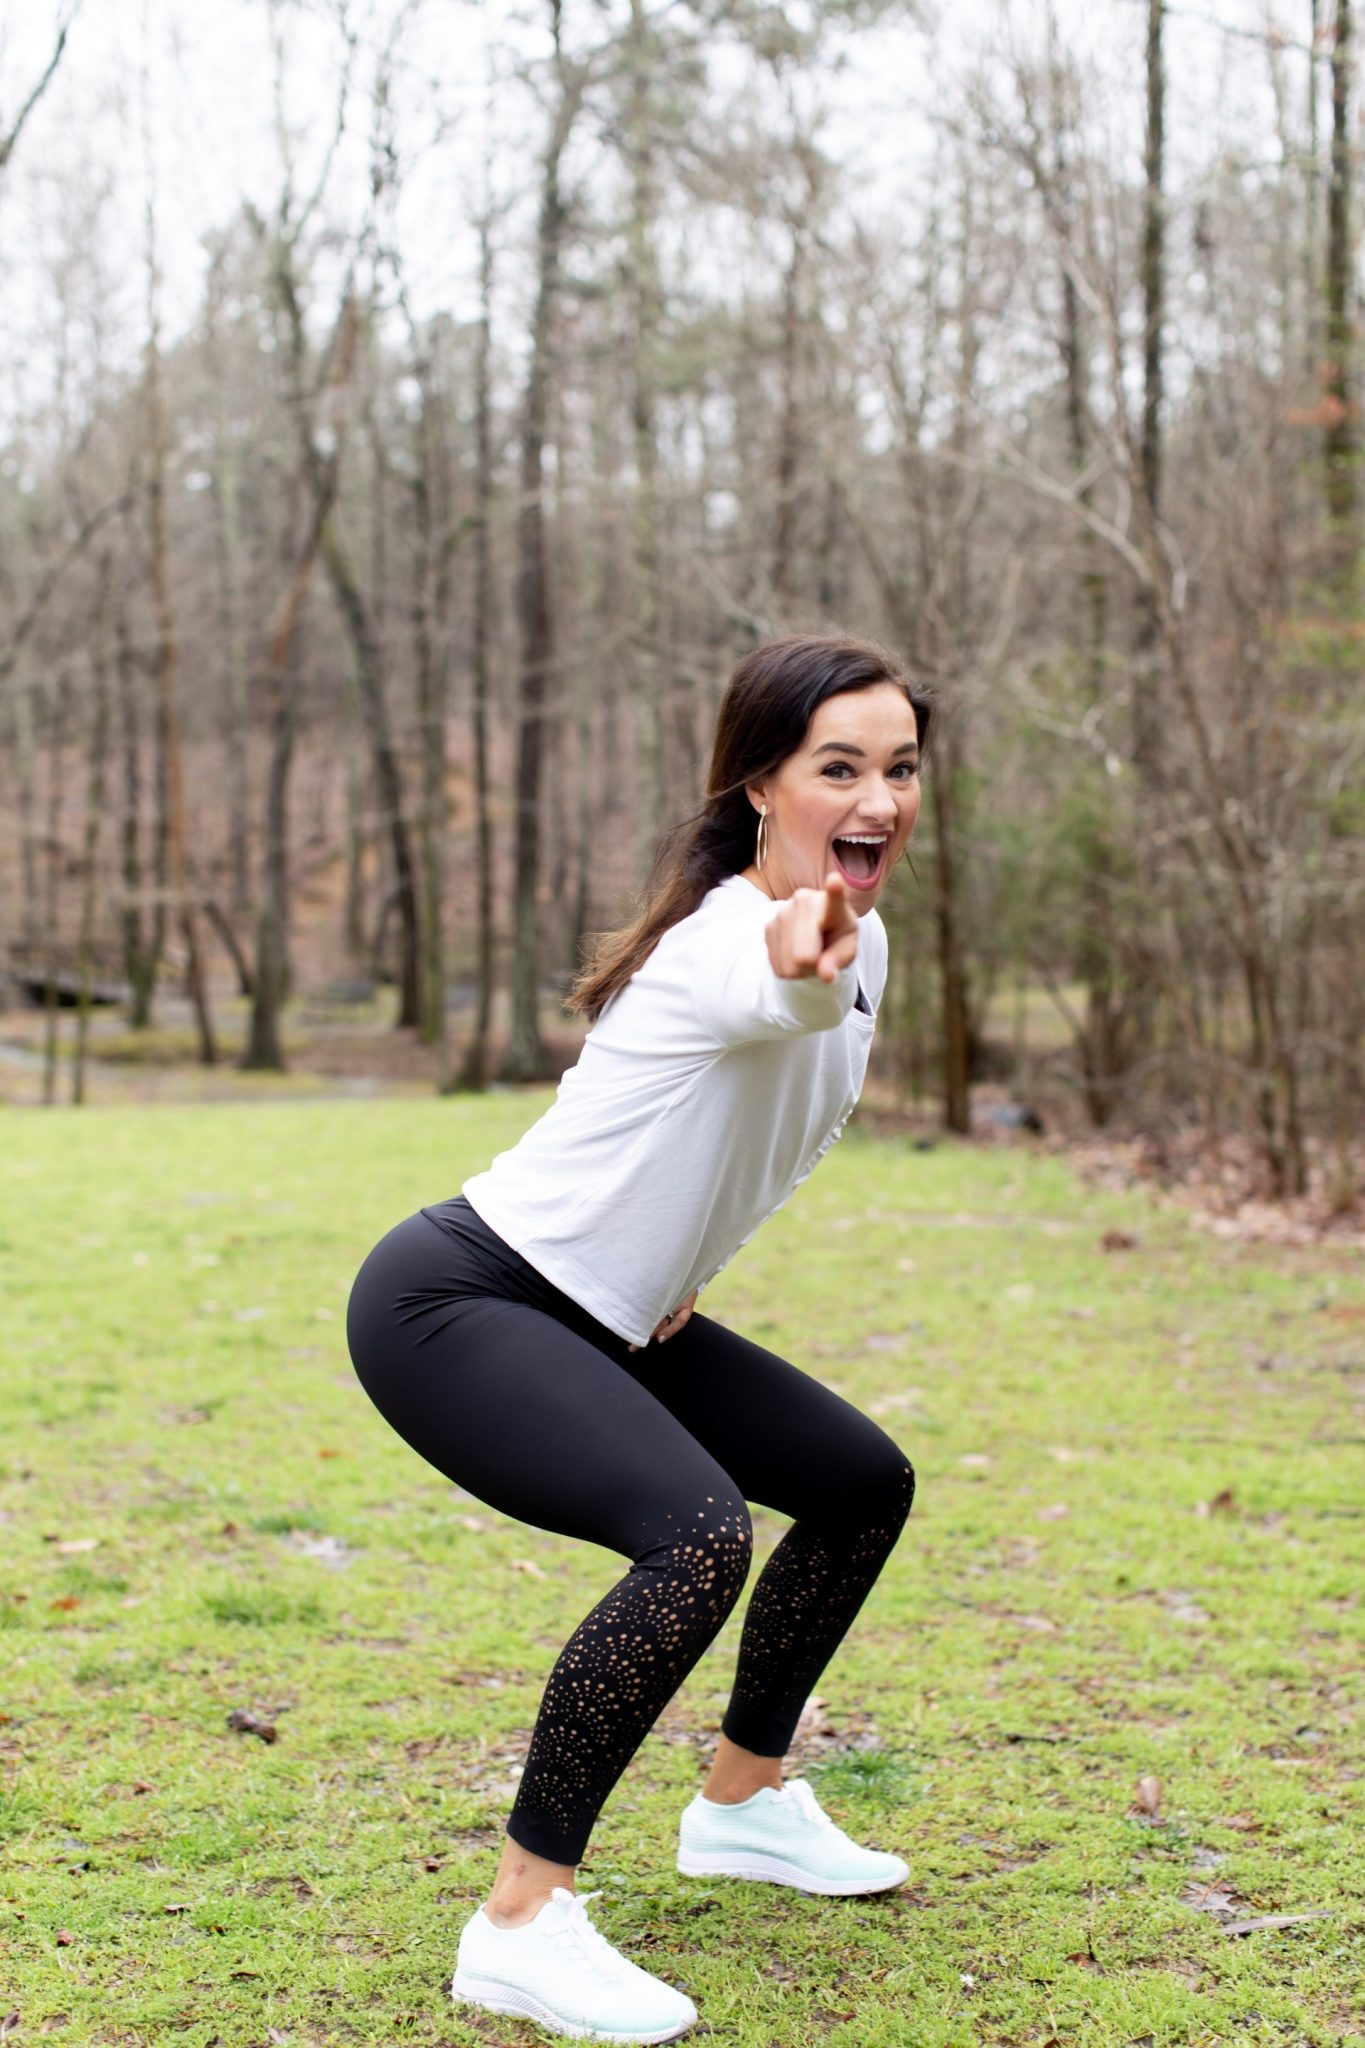 Practical Tips For Doing Whole30 During Covid-19 by Alabama Life + Style Blogger, Heather Brown // My Life Well Loved